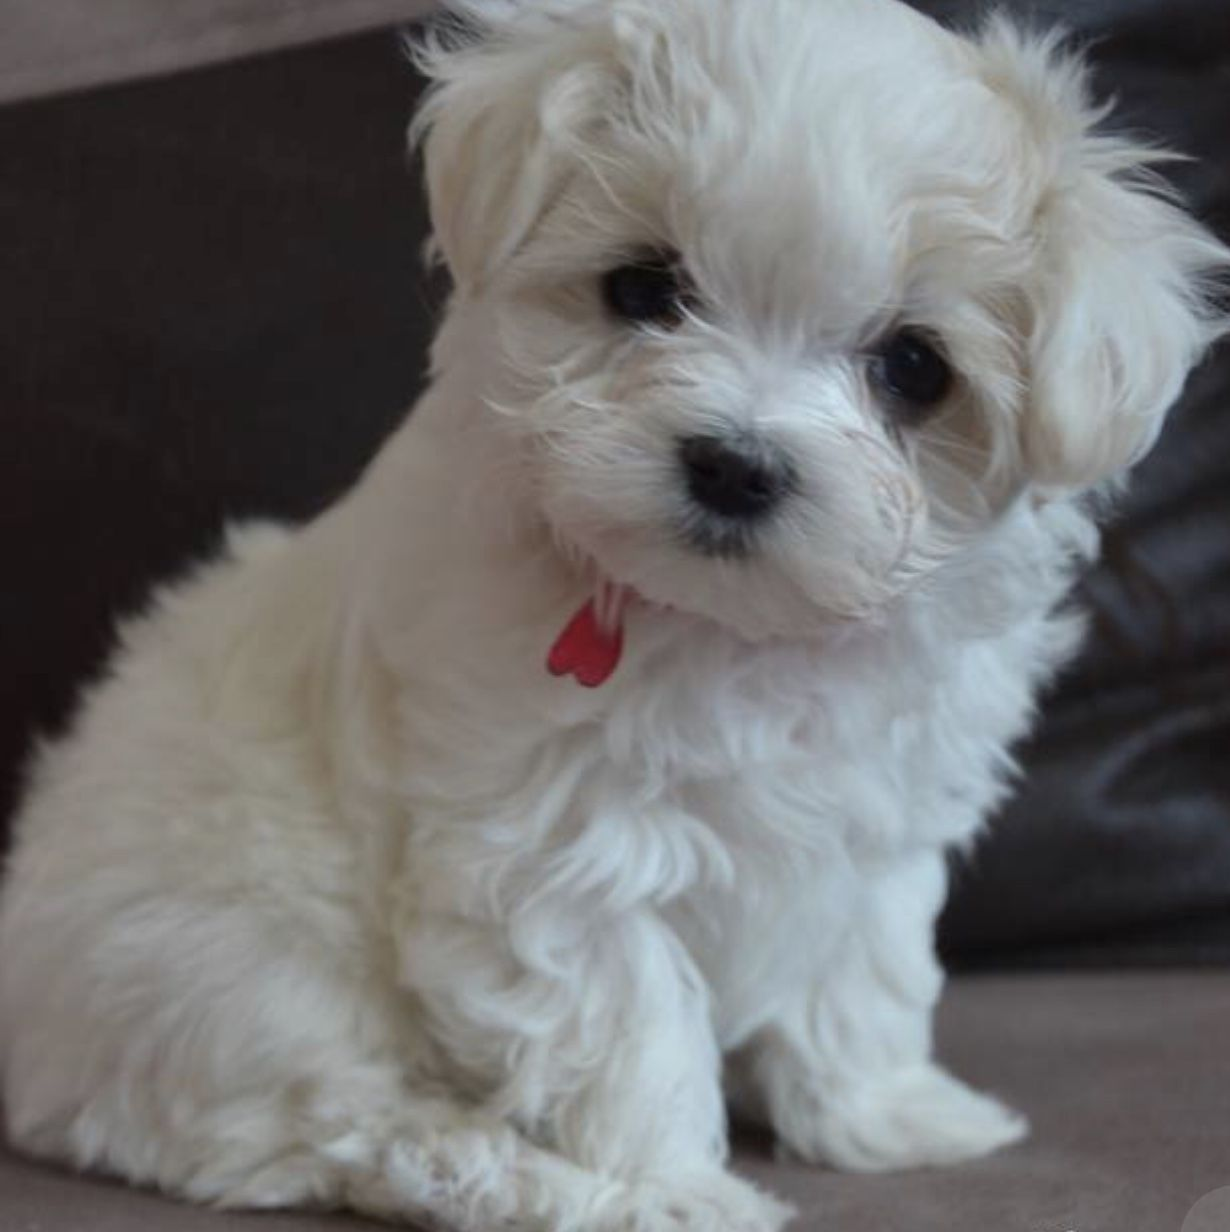 I Have For Sale Female And Male Maltese Puppy 100 Maltese Have Hair Not Fur It S Not Lazy Papers Of Parents To See When U Come The First Dewormed Will Be